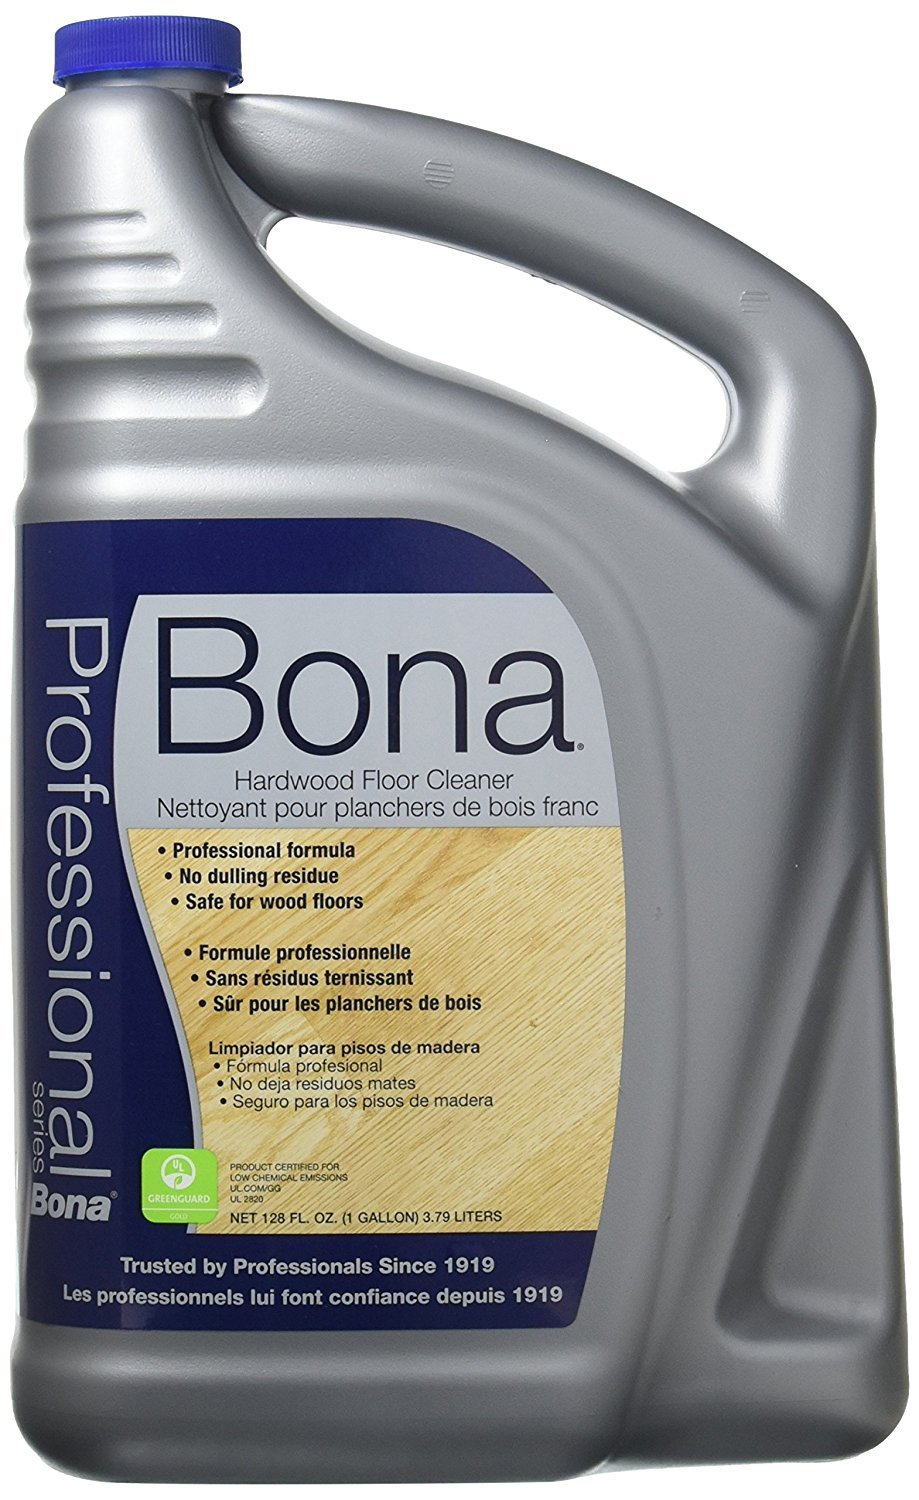 Bona Pro Series Hardwood Floor Cleaner Refill, (2-Gallon)